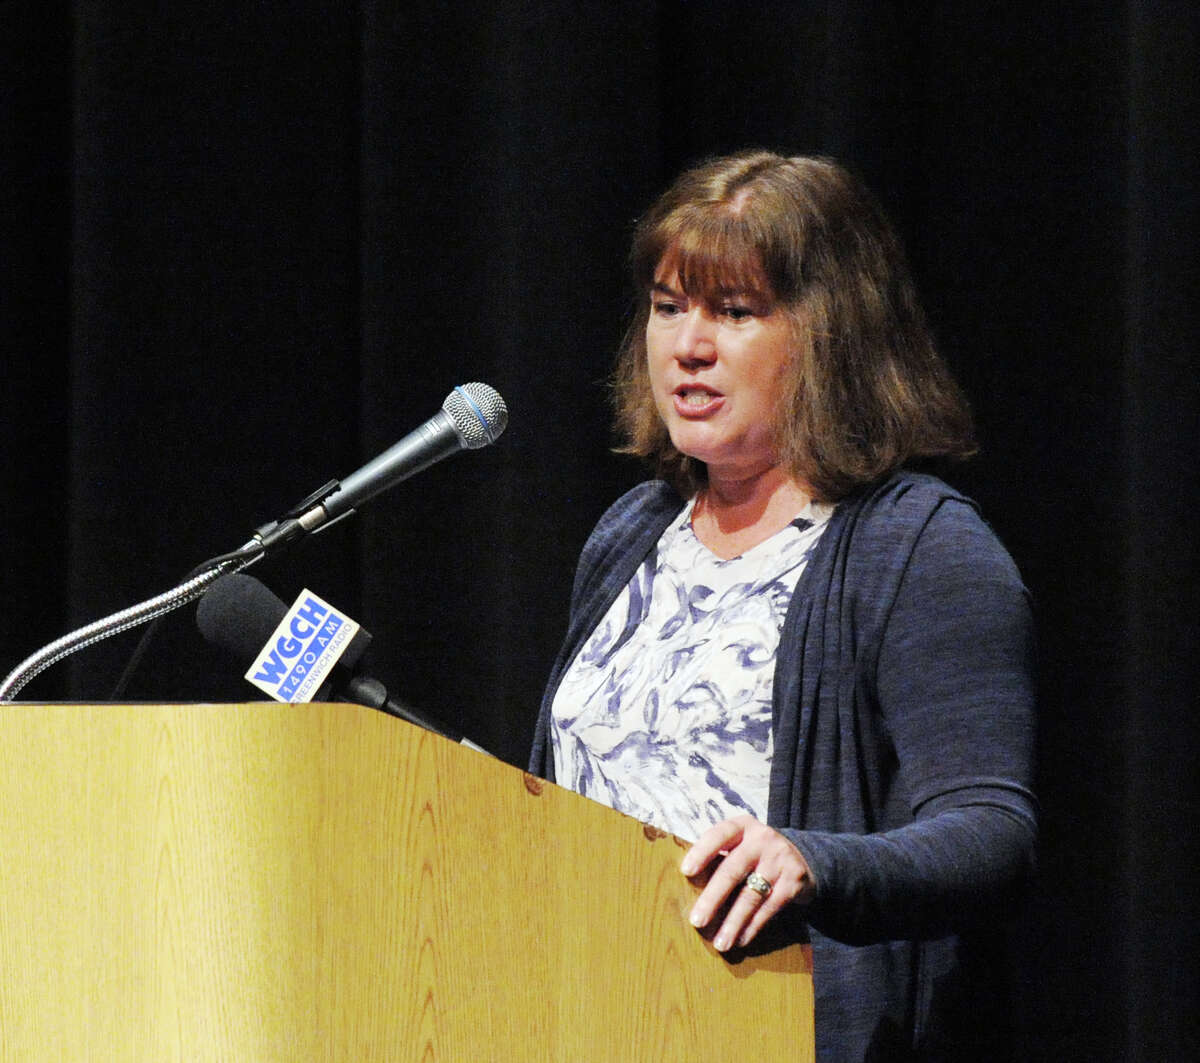 Laura Erickson, chair of the Board of Education, spoke during the Greenwich Public Schools Distinguished Teachers Awards Ceremony at the Greenwich High School Performing Arts Center, Conn., Tuesday, May 3, 2016. Six teachers were recognized for their excellence, Ana Chejin-Danielsen of New Lebanon School, Julie Cofone of North Mianus School, Sarah Goldin of Greenwich High School, Sarah Harris of North Mianus School, Jeannine Madoff of the International School of Dundee and Ian Tiedemann of Greenwich High School.